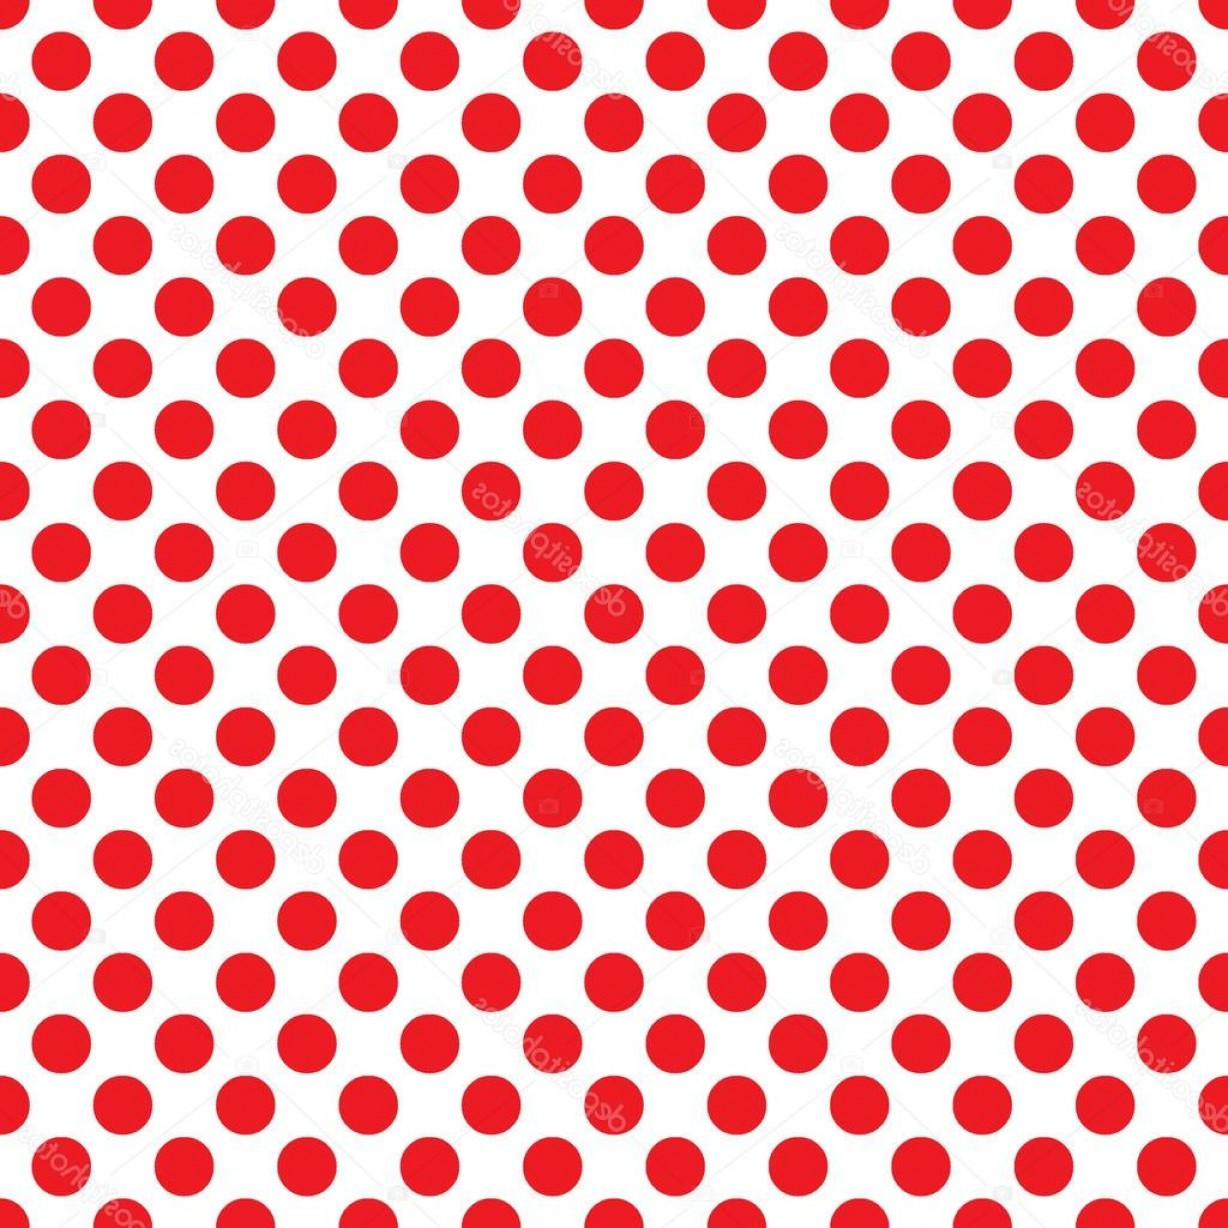 Polka Dot Background Vector Y: Stock Illustration Seamless Vector Red Polka Dots